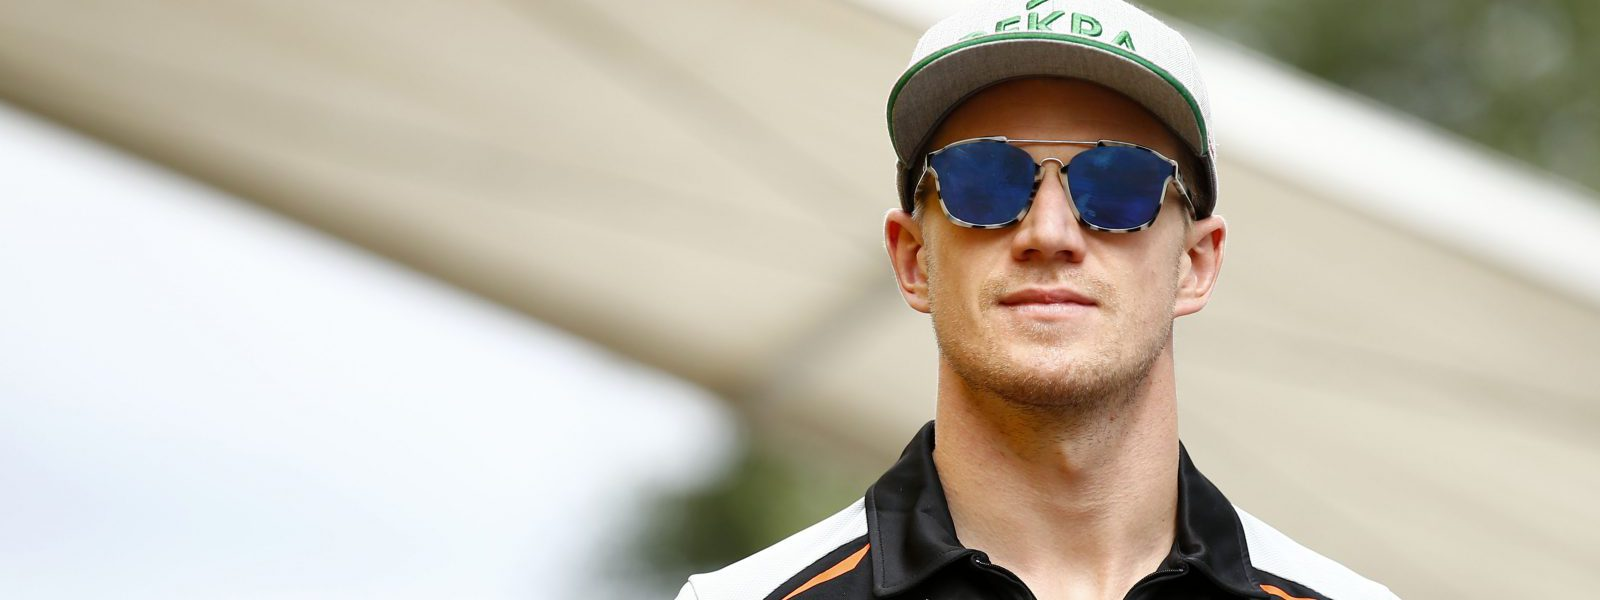 Motorsports: FIA Formula One World Championship 2016, Grand Prix of Germany,  #27 Nico Hulkenberg (GER, Sahara Force India F1 Team),  *** Local Caption *** +++ www.hoch-zwei.net +++ copyright: HOCH ZWEI +++